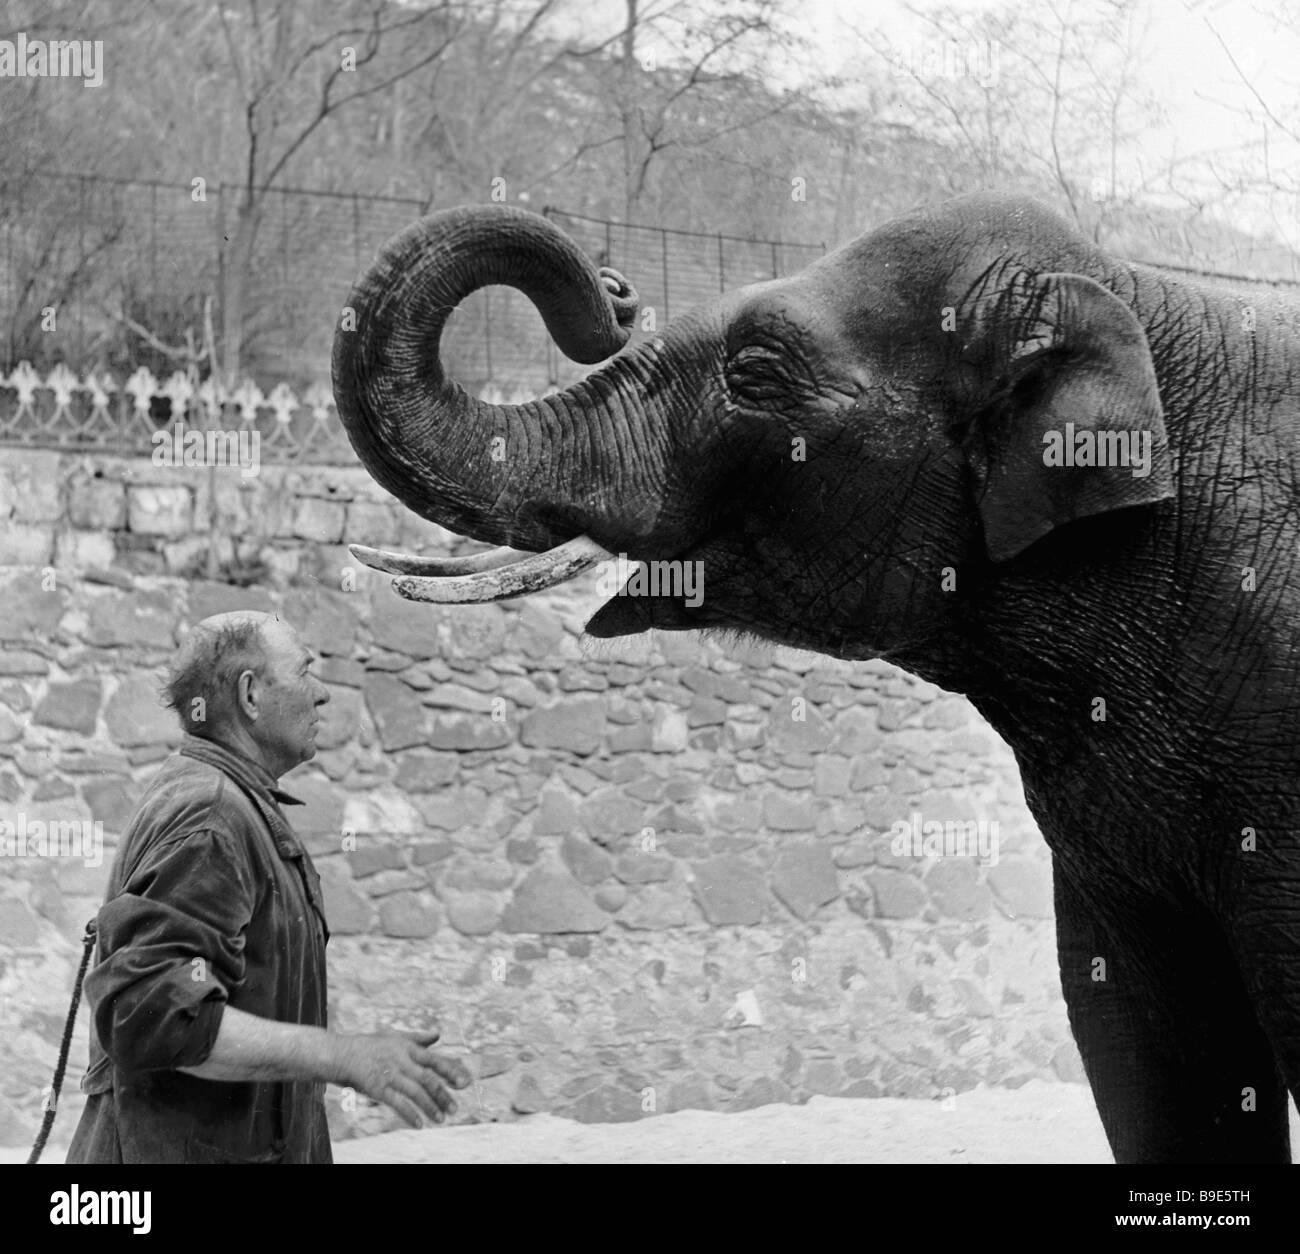 Worker of the Yerevan zoo issues orders to elephant in several languages - Stock Image